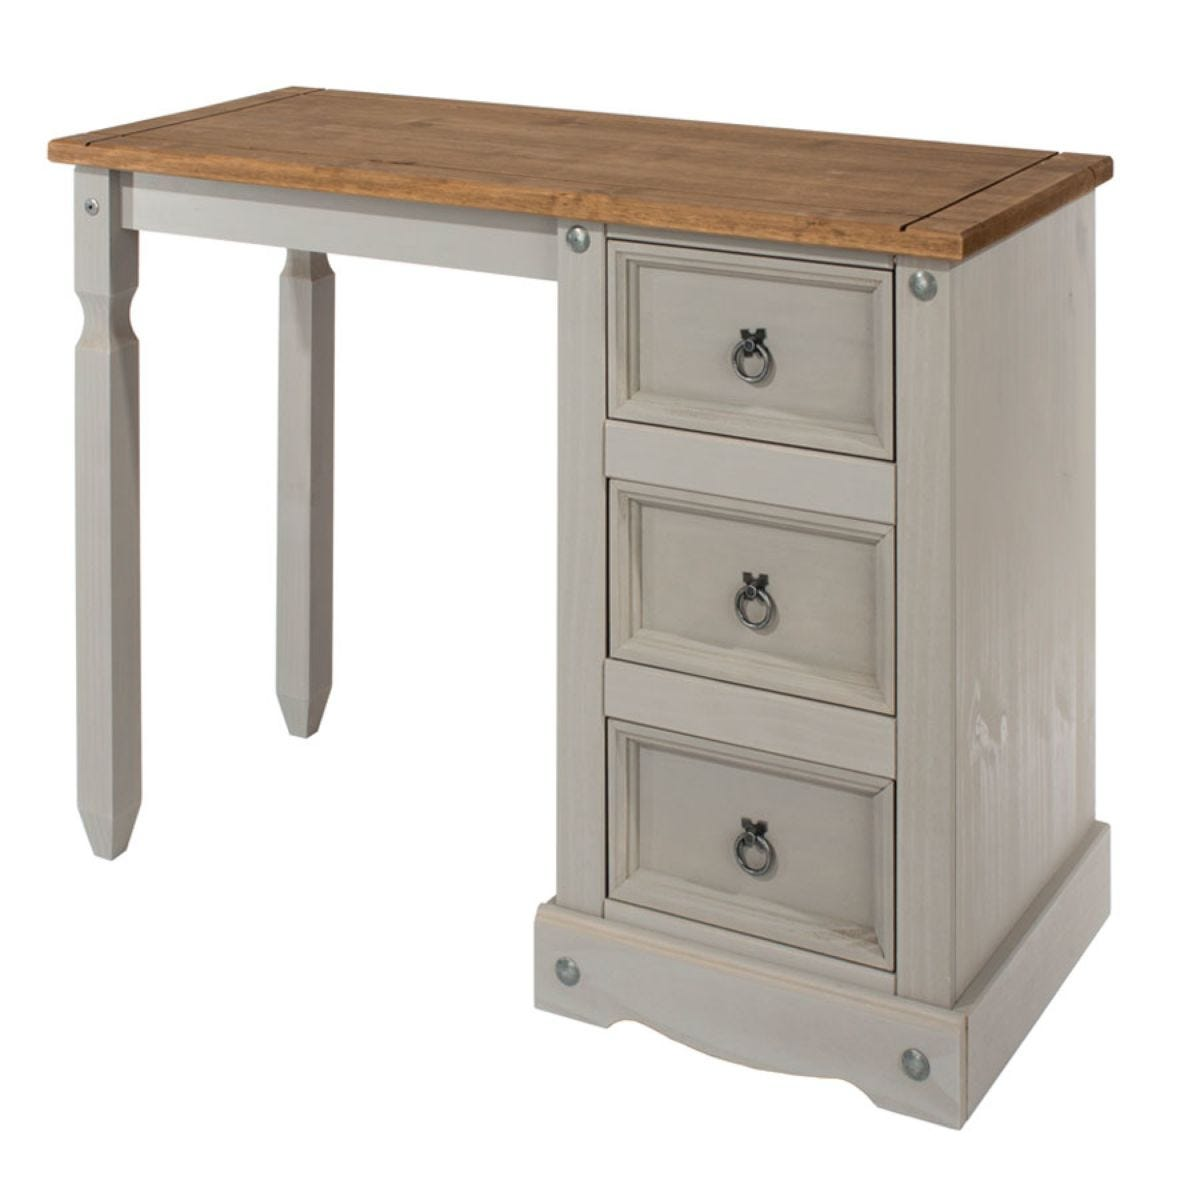 Halea 3-Drawer Pine Dressing Table - Grey